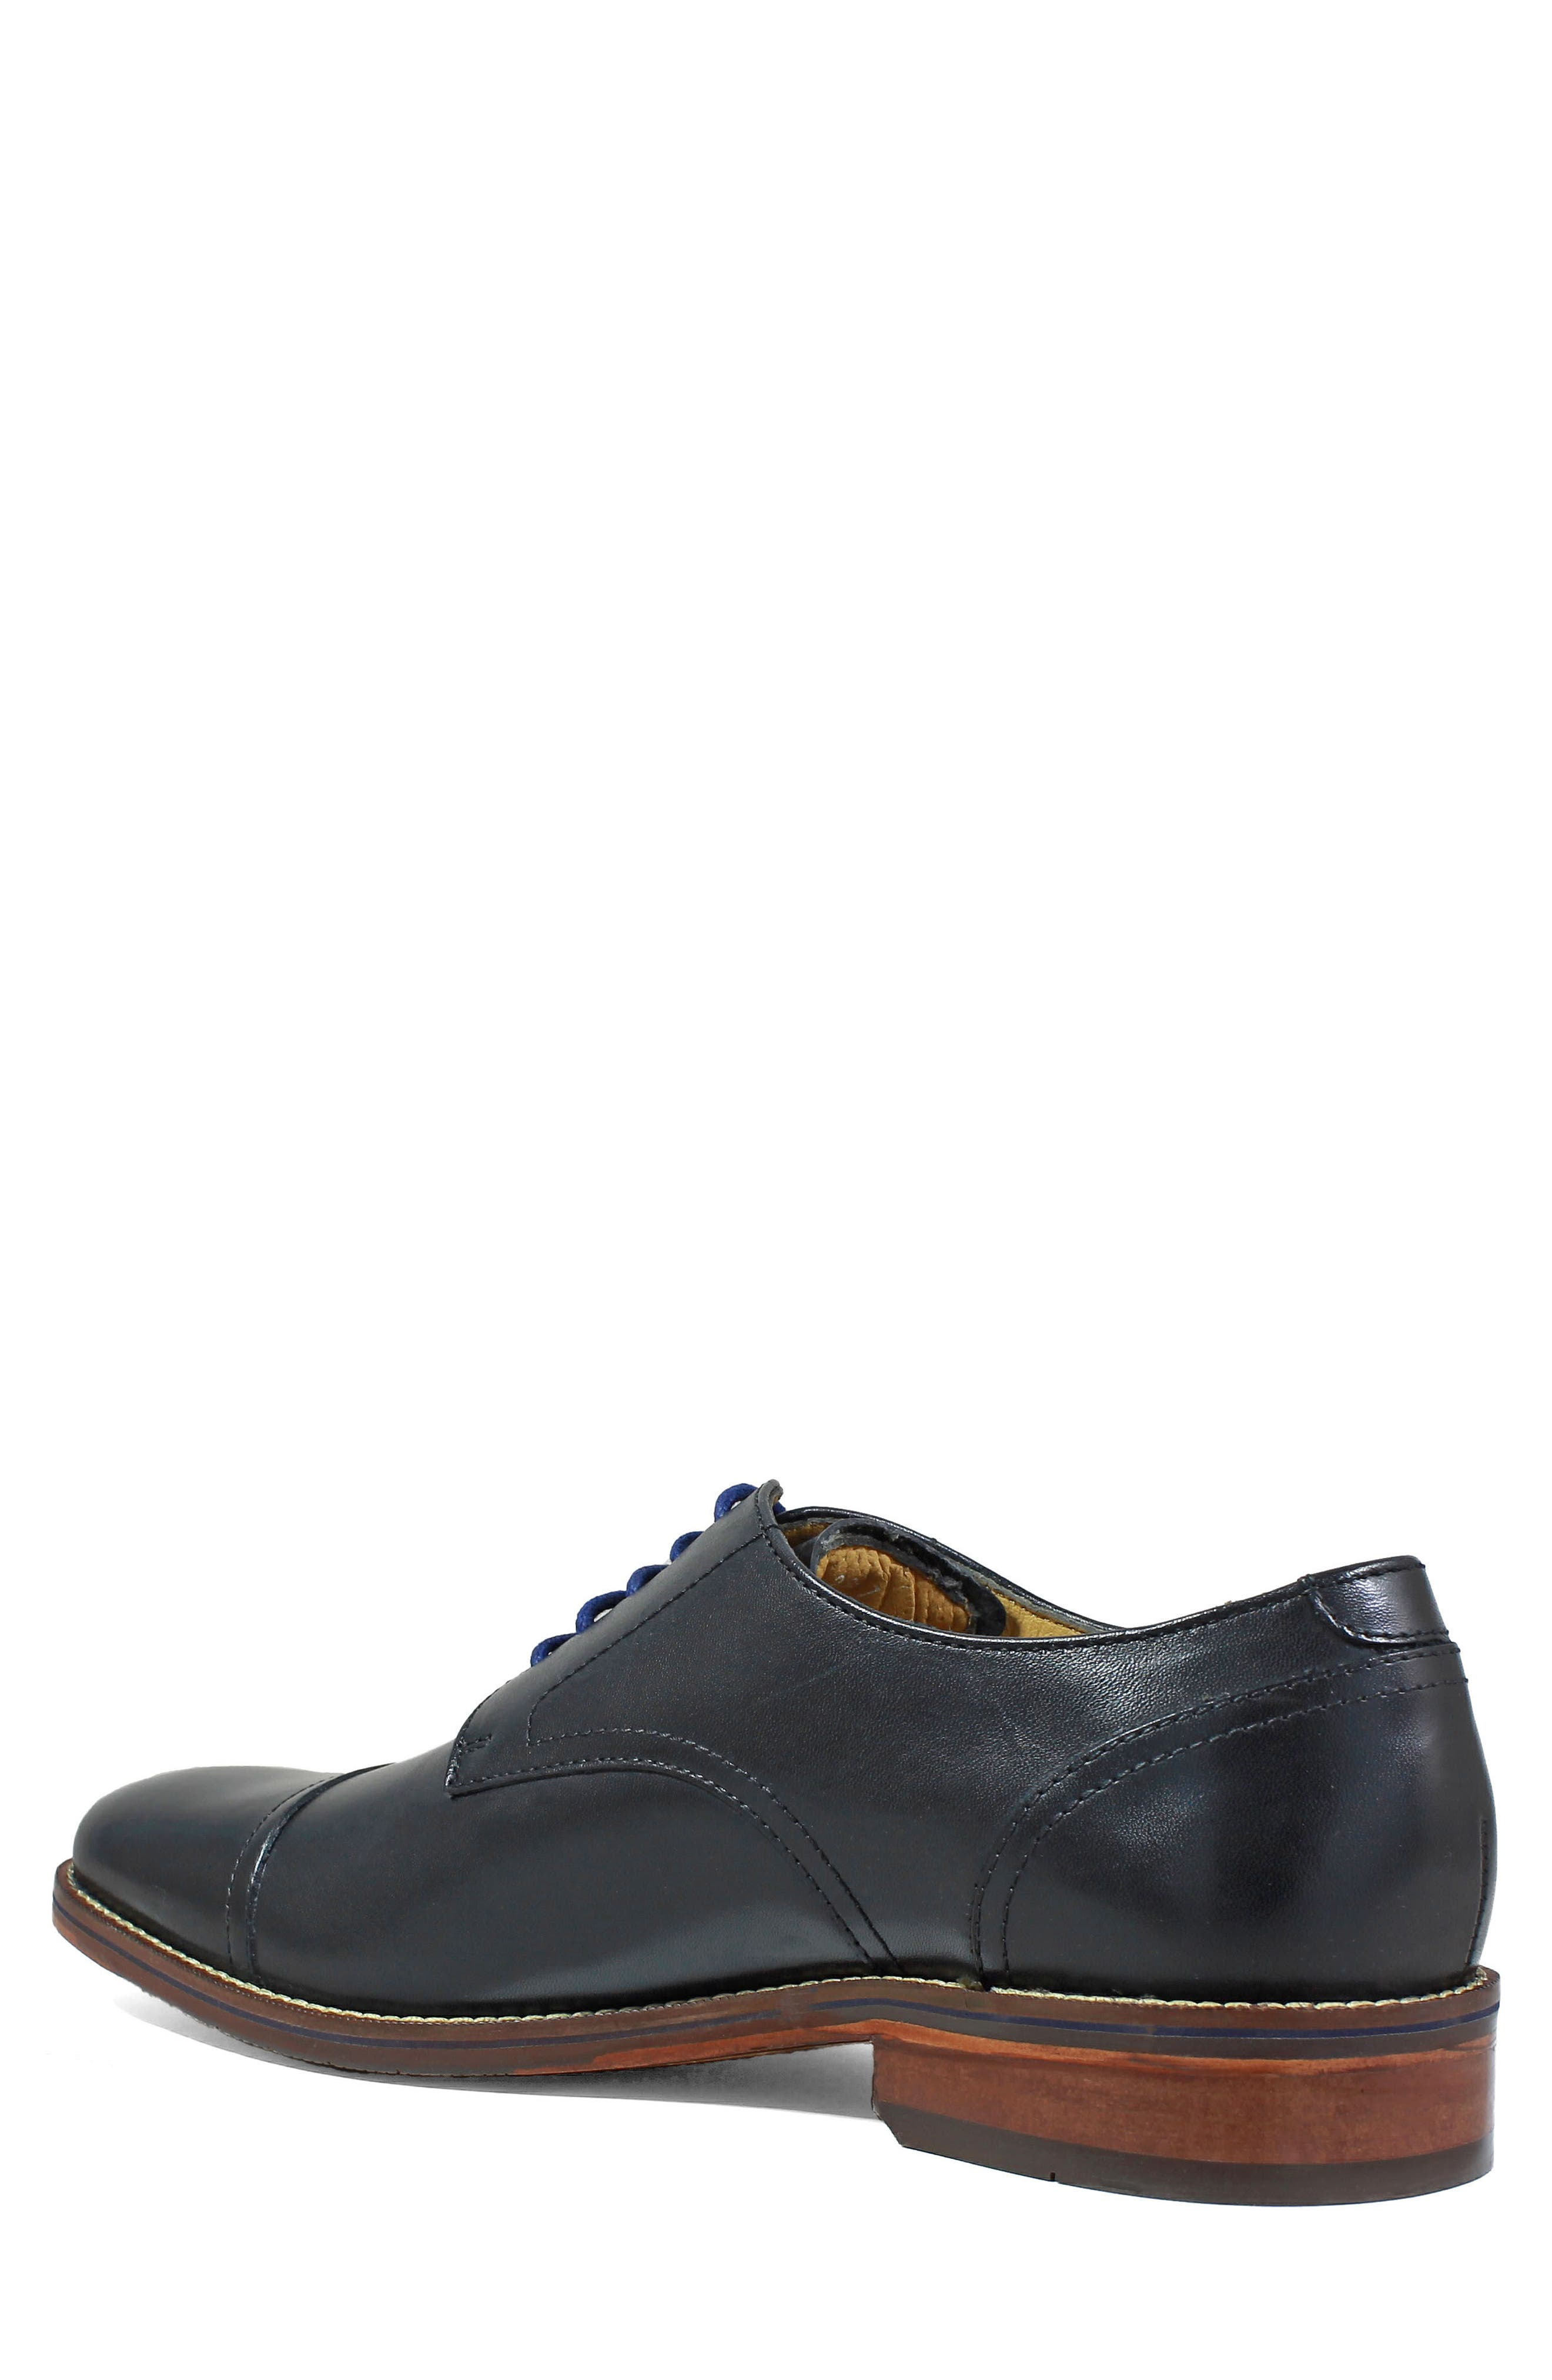 Salerno Cap Toe Derby,                             Alternate thumbnail 2, color,                             BLACK LEATHER